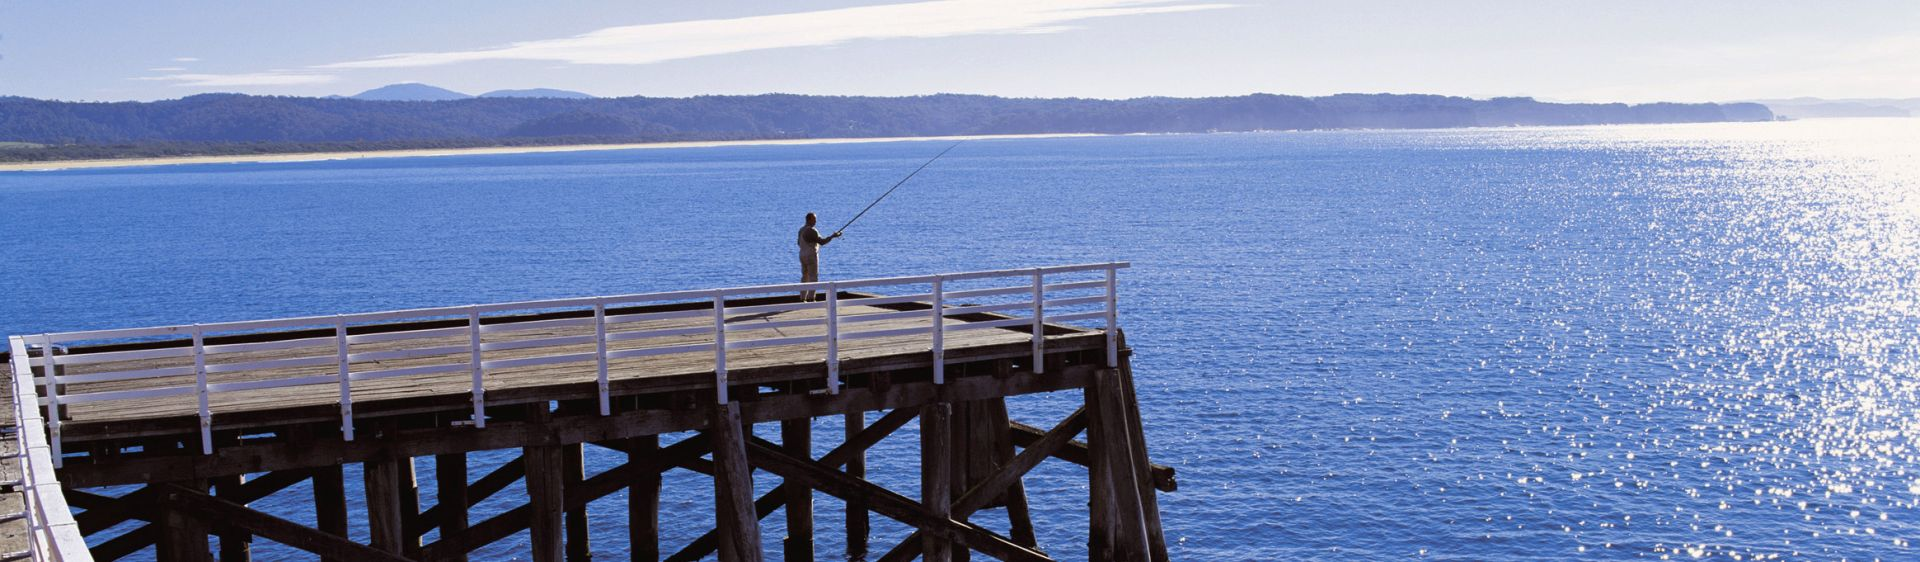 Early morning at Tathra Wharf on the Sapphire Coast